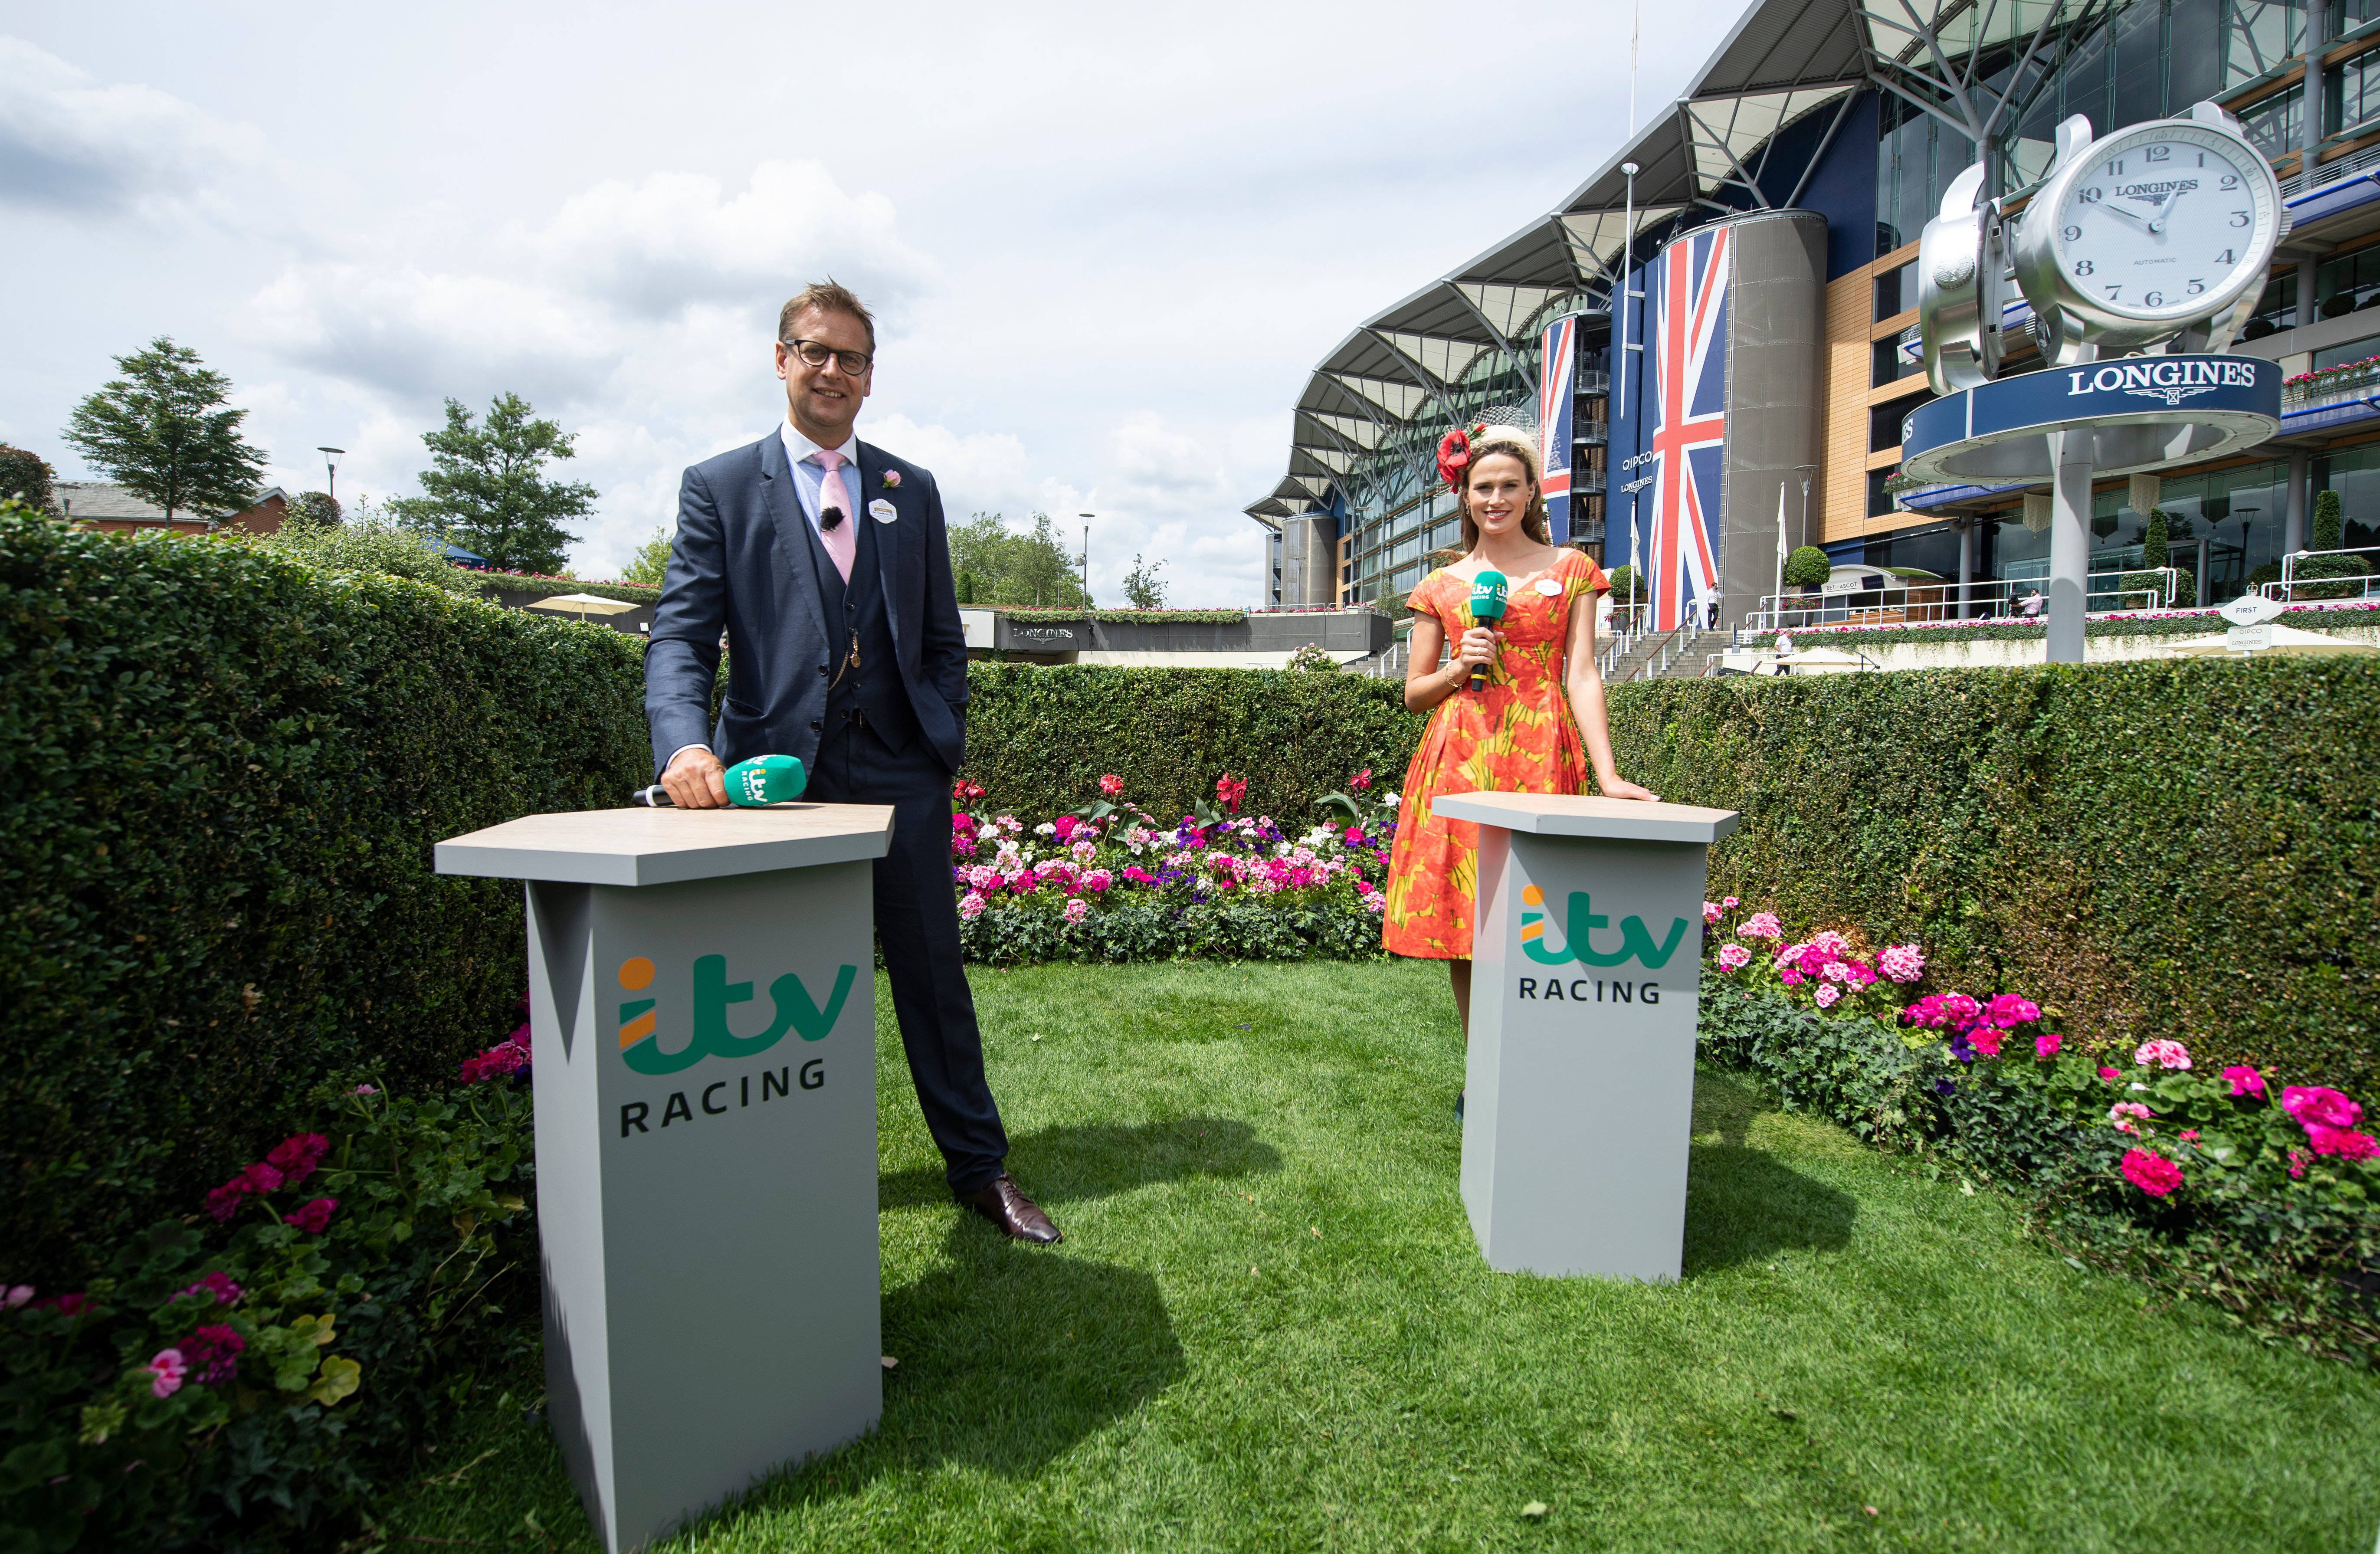 Deal secured for extension of ITV Racing coverage until 2023